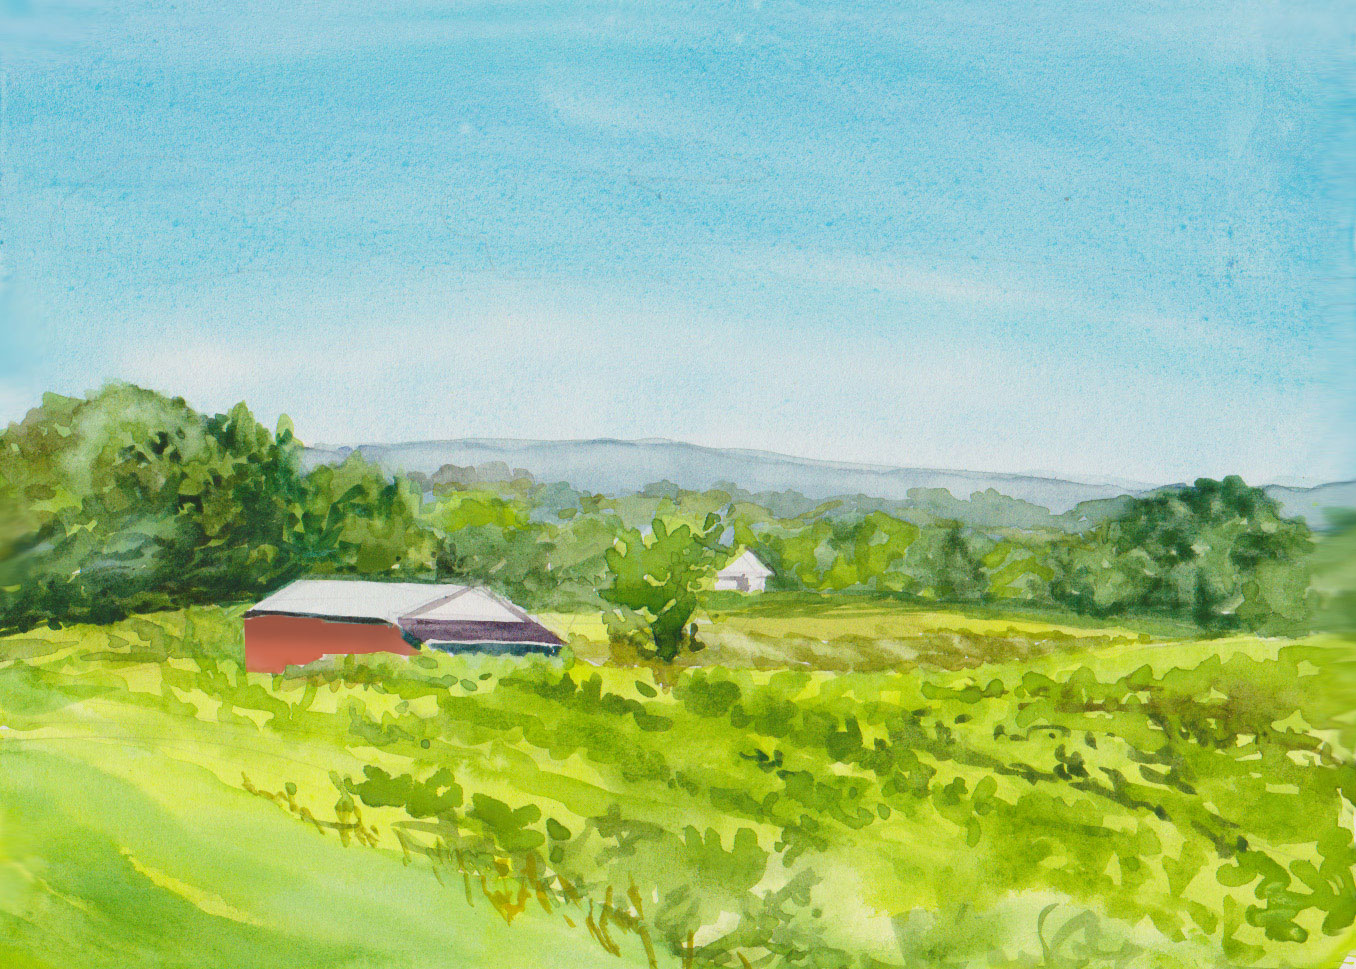 Tawse Winery 2 - Watercolour 9 x 6 - SOLD